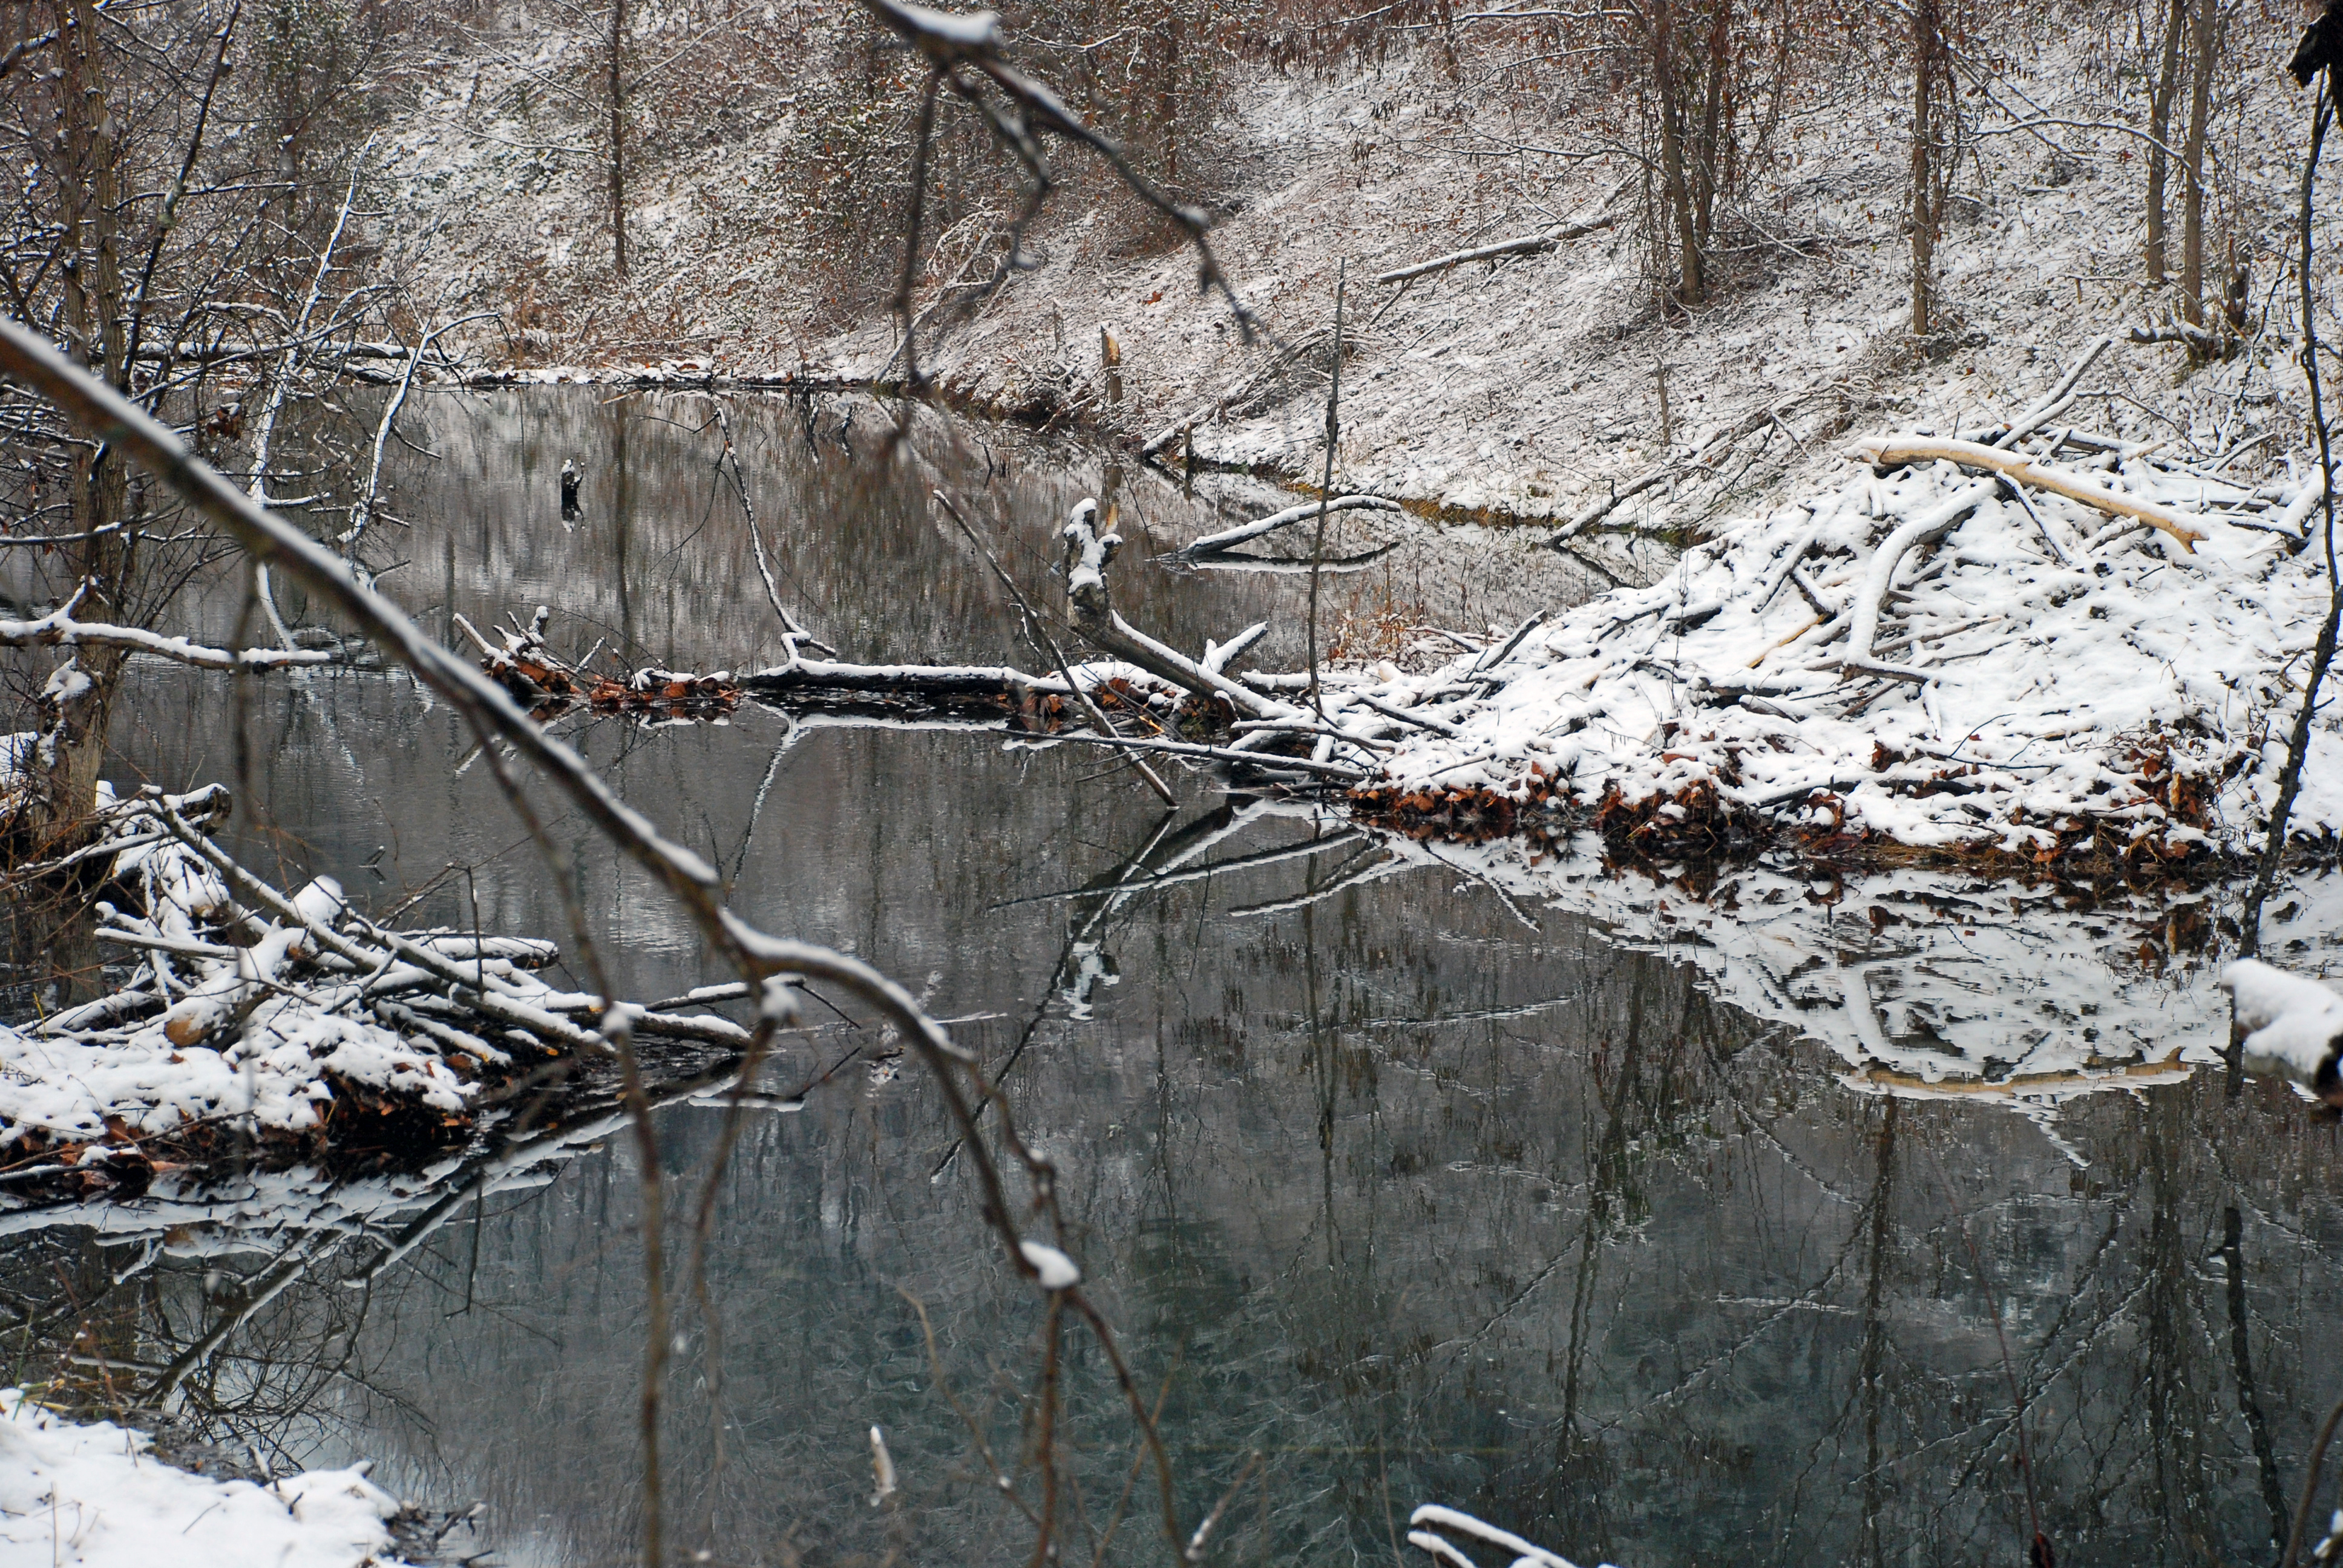 Beavers Sleep Under the New Snow